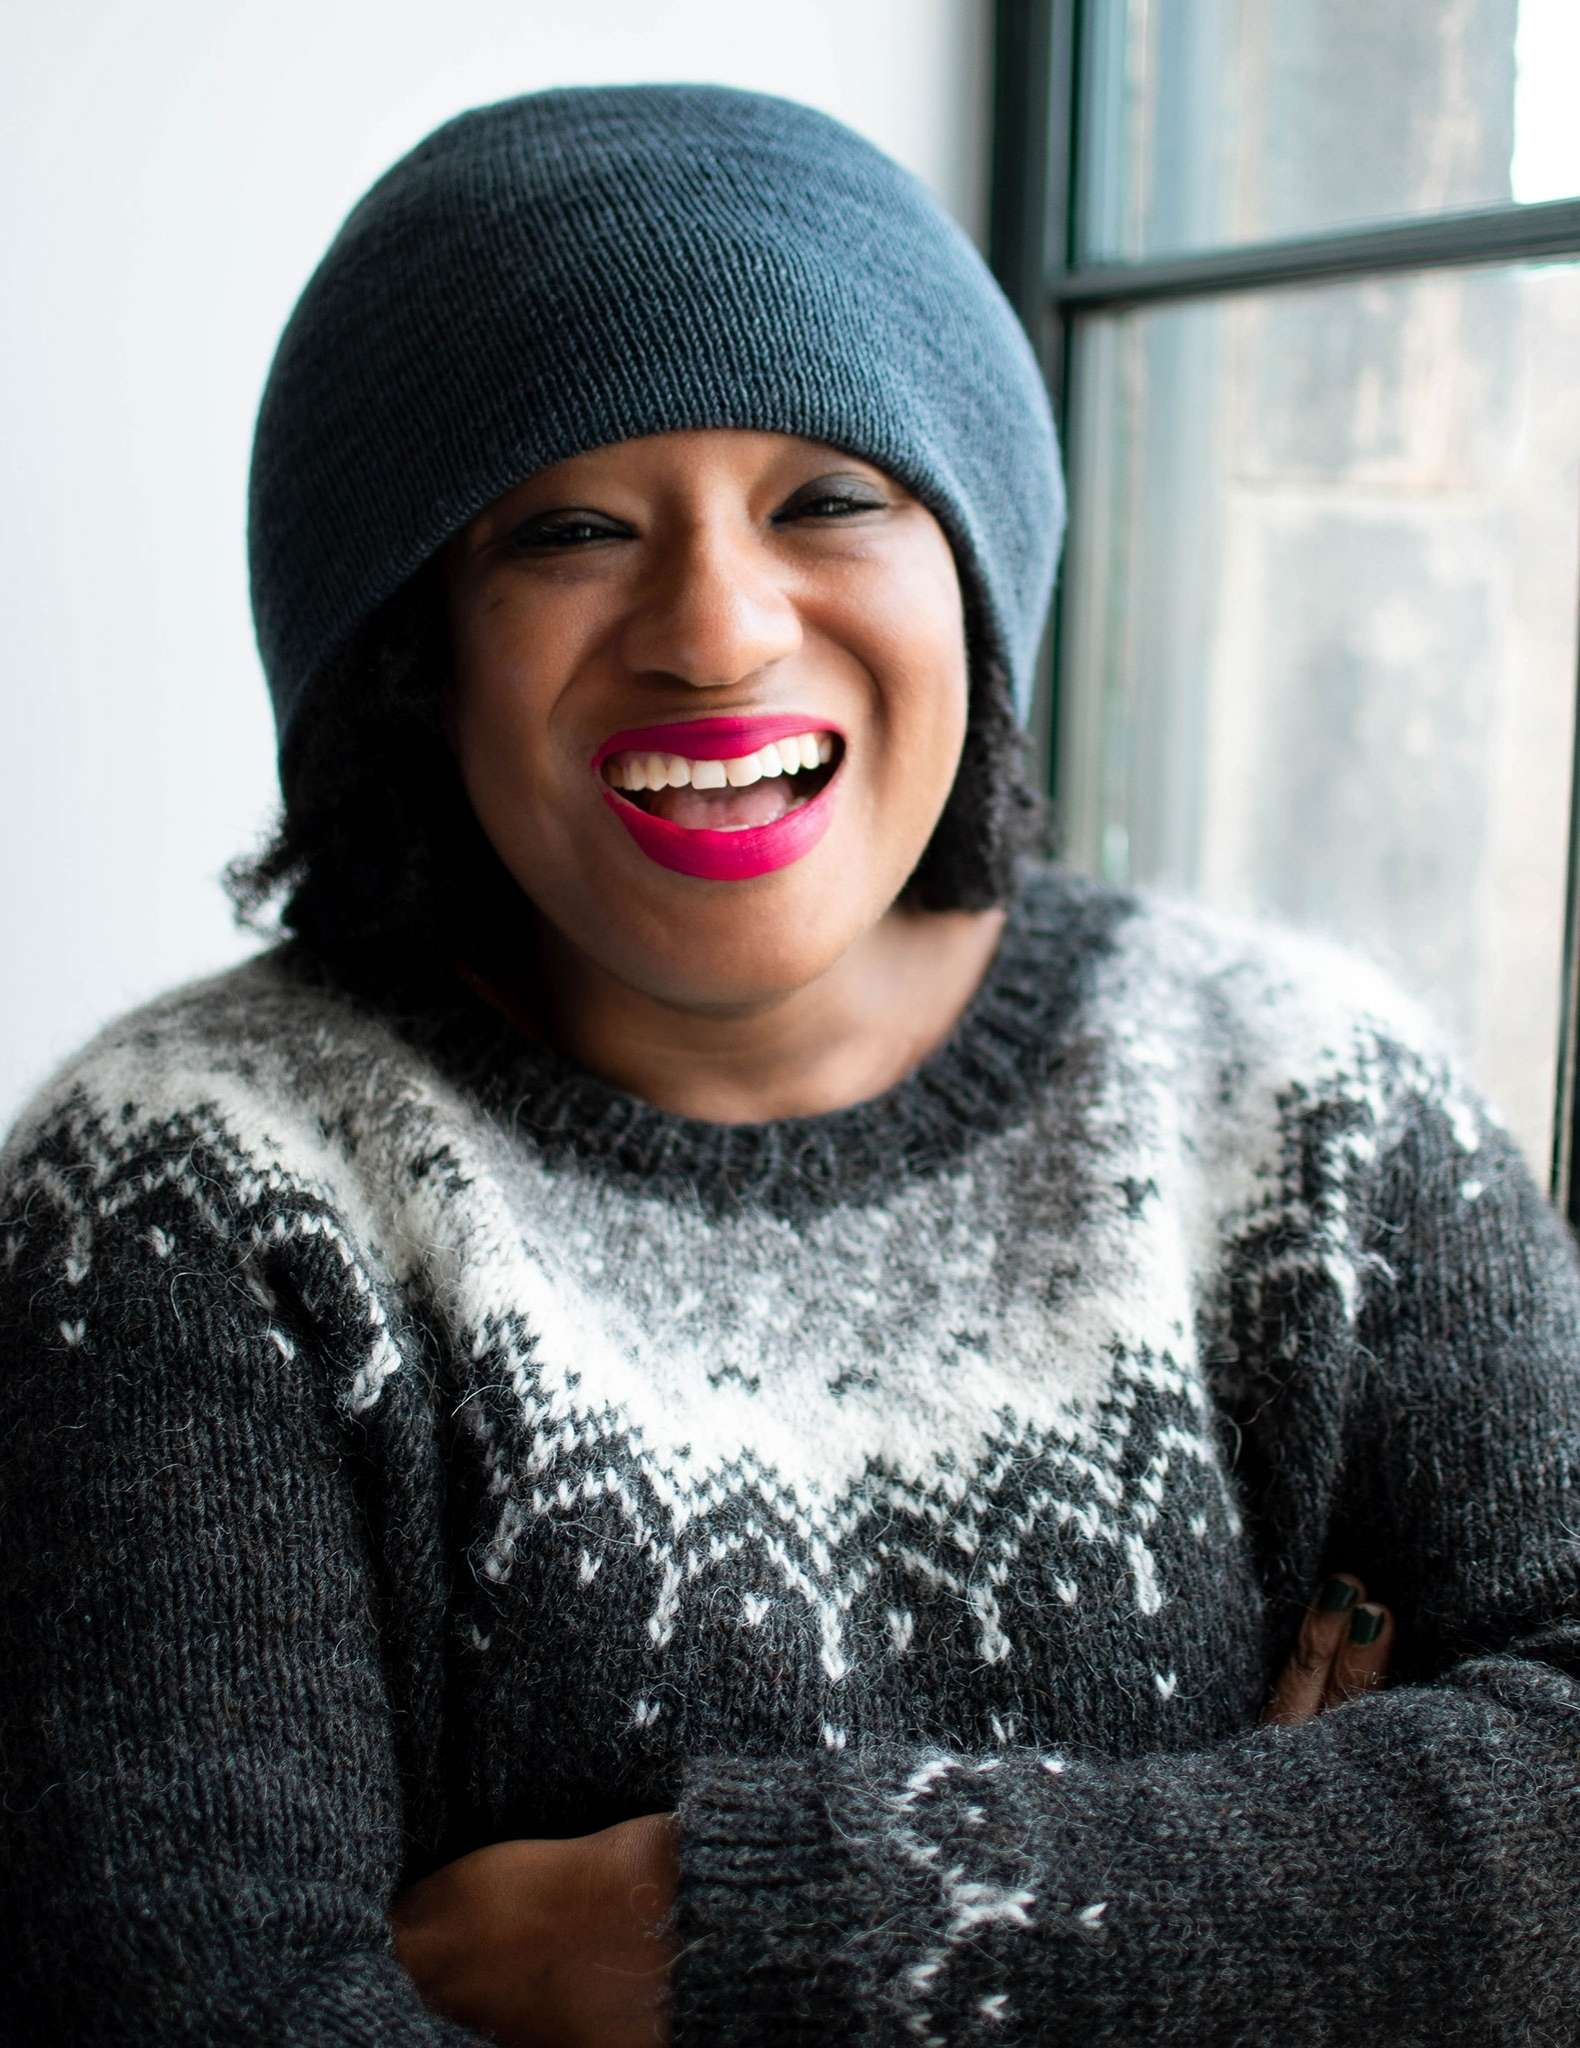 A close up of a black woman with bright pink lipstick wearing a teal beanie hat and colourwork sweater in blacks and neutral colours.